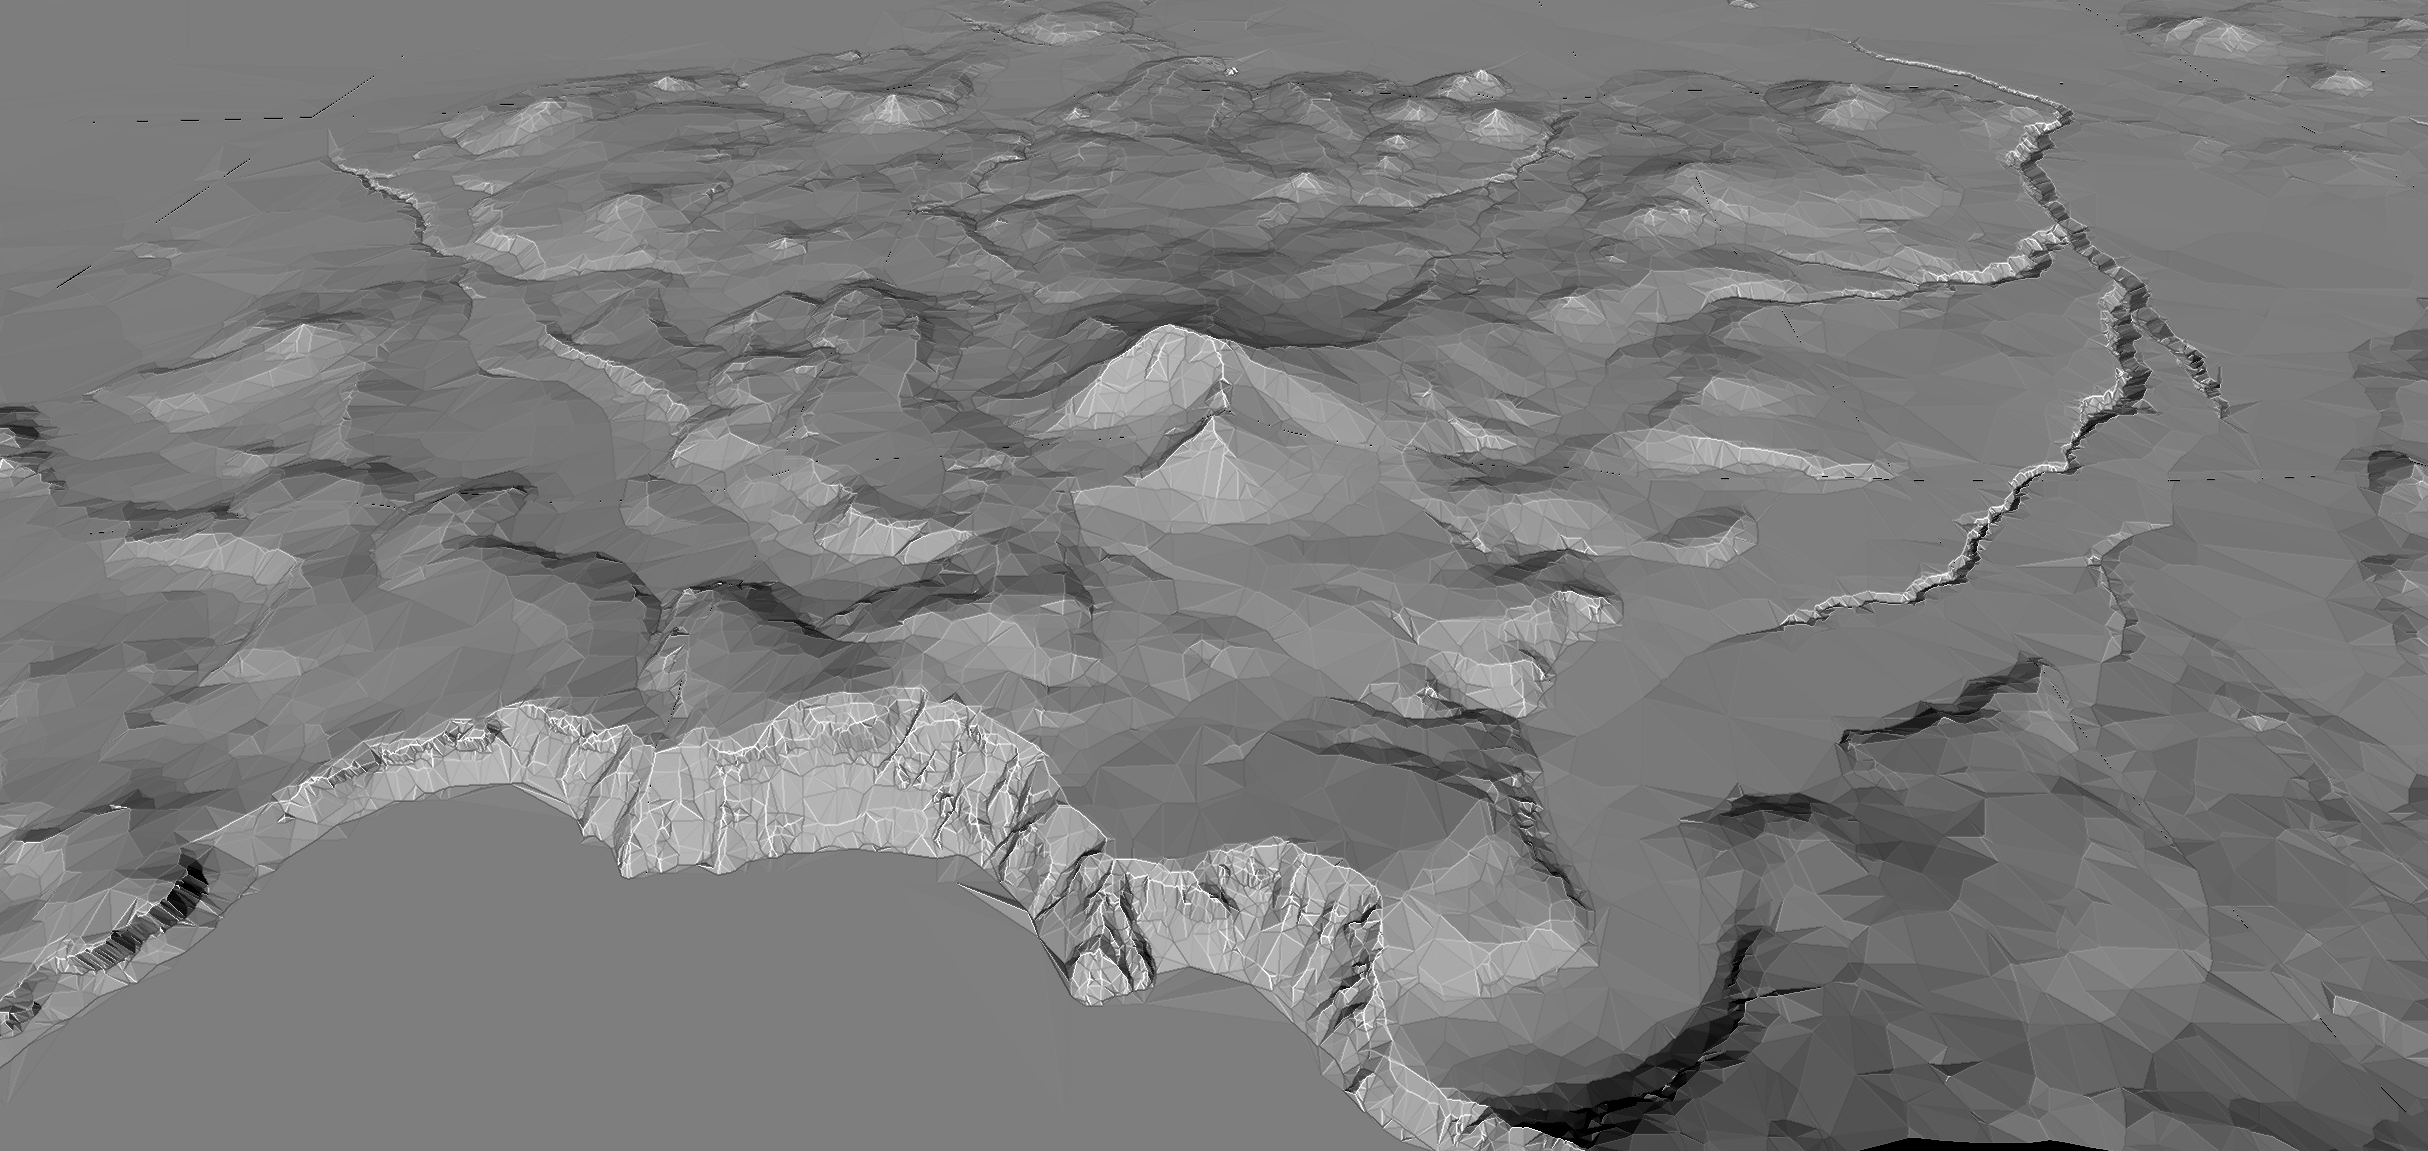 Crater Lake terrain rendered in 3D